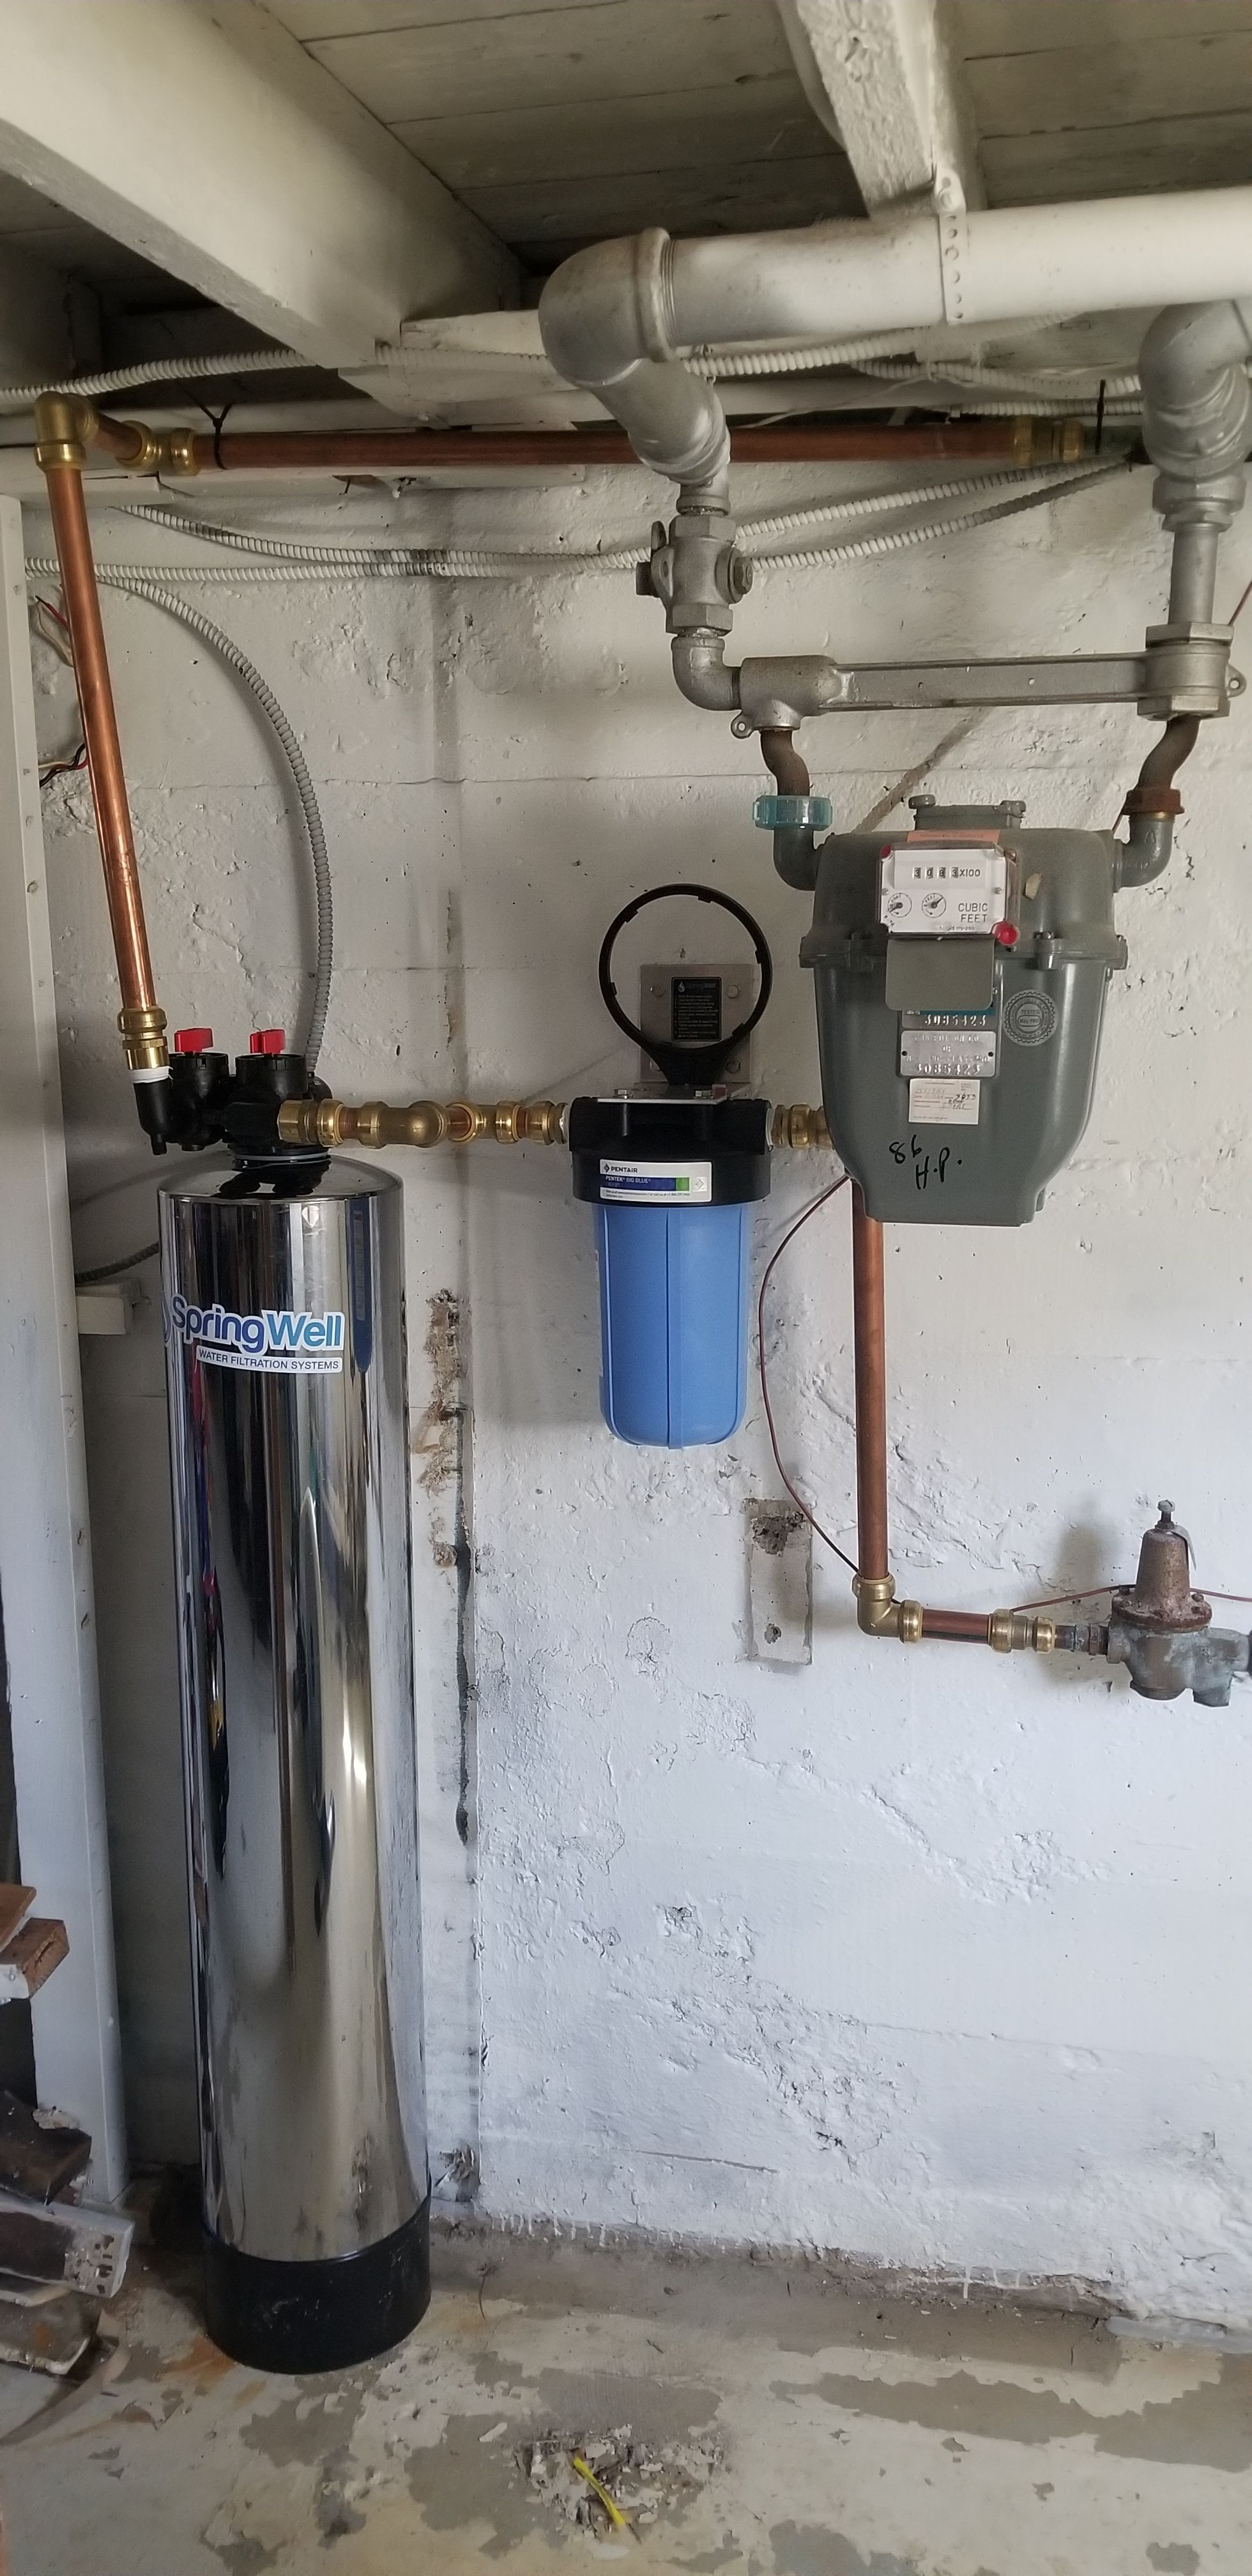 Whole House Water Filter System Springwell Water Filtration System Whole House Water Filter Water Purification System House Water Filter